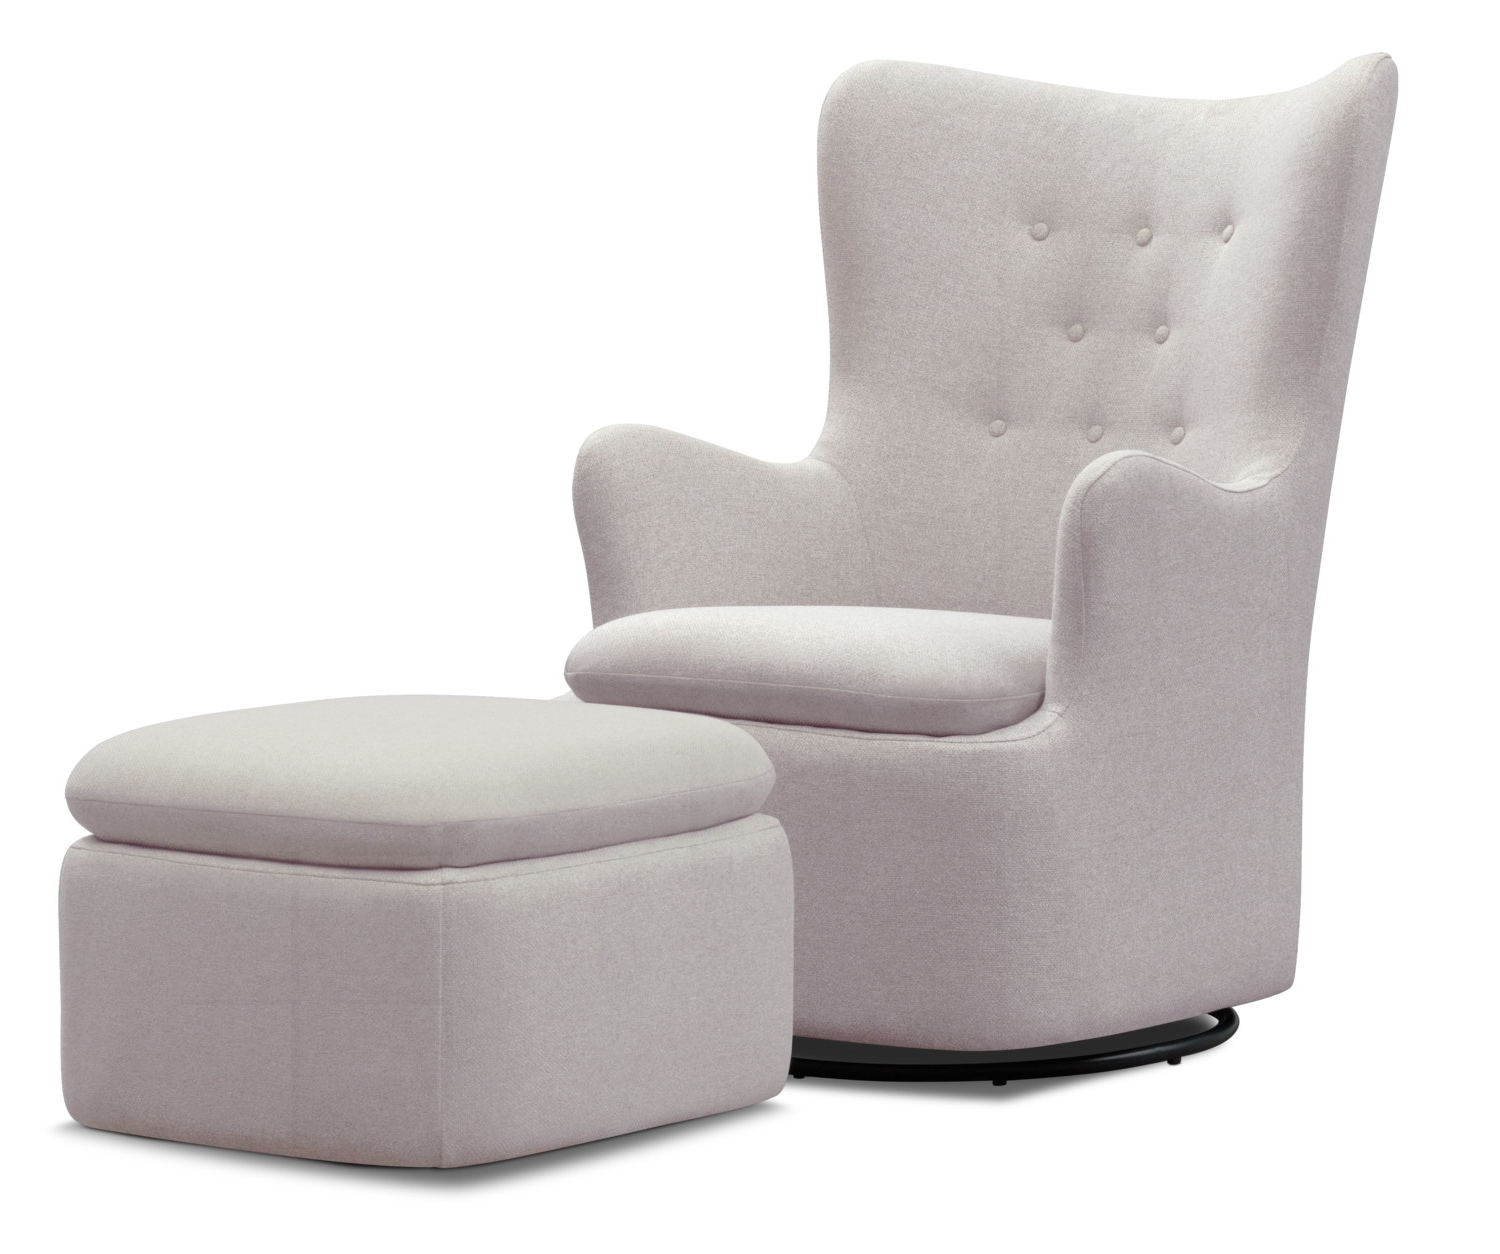 Loft Black Swivel Accent Chairs For Well Known Addie Swivel Chair And Ottoman Set – Gray (Gallery 10 of 20)